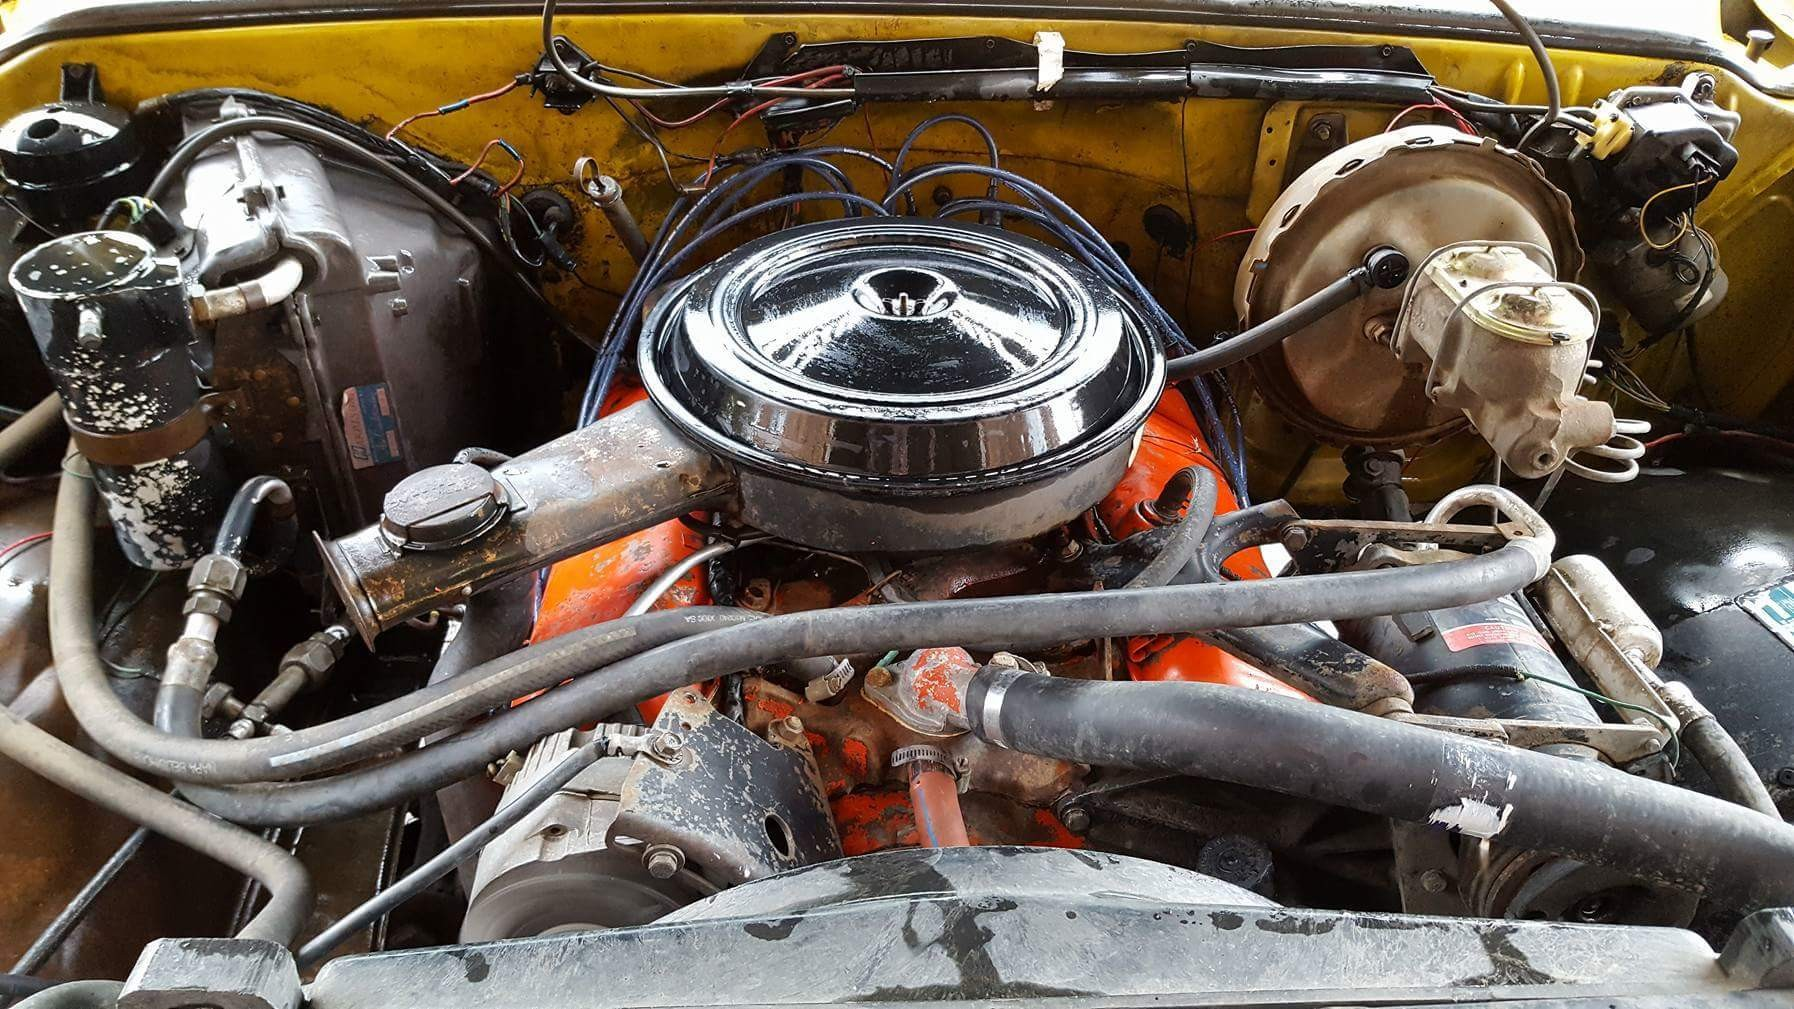 1973 Chevrolet C20 Cheyenne - 454ci - yellow (1)